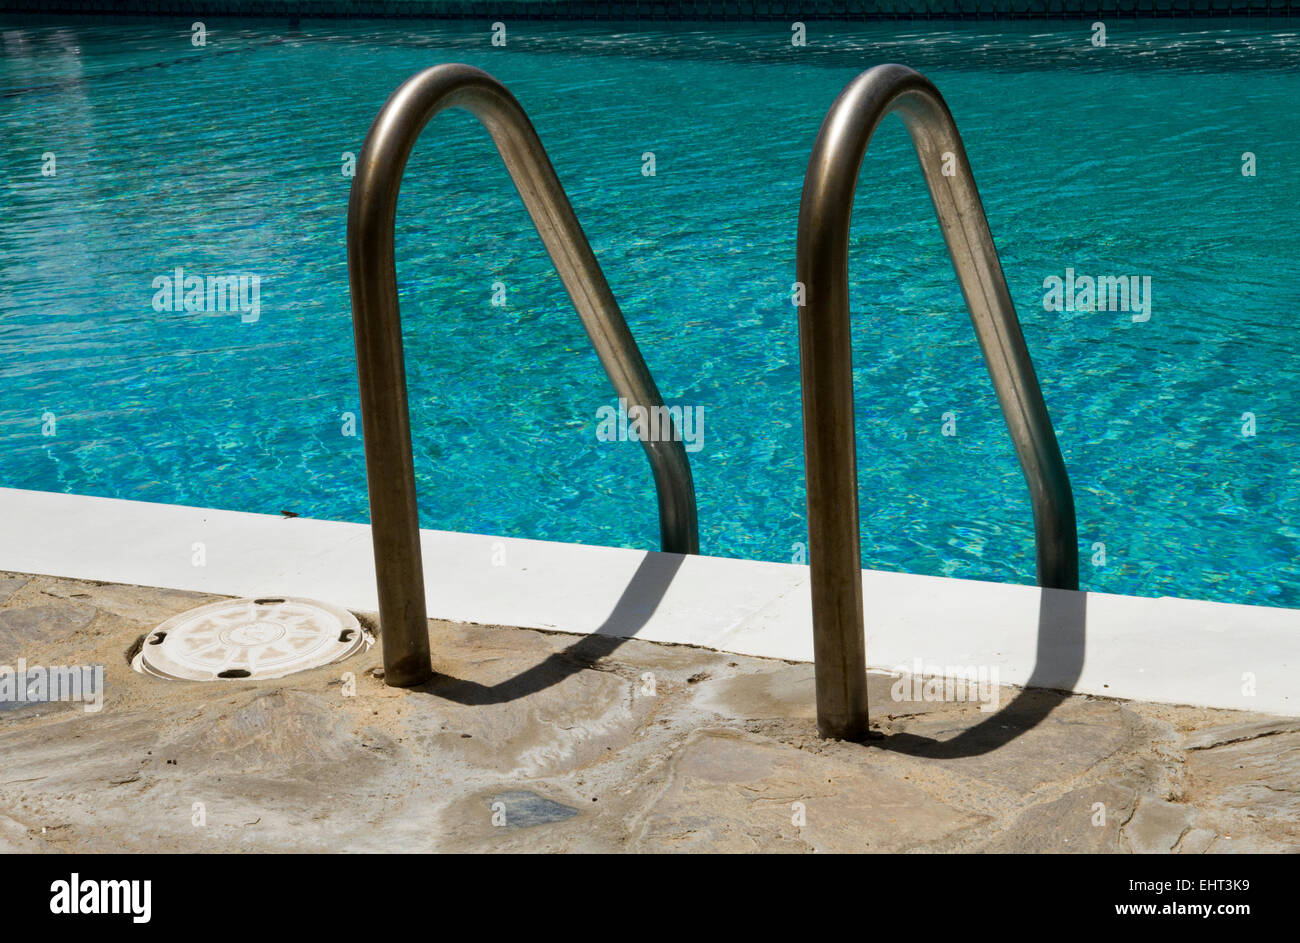 Hand rails for a swimming pool in the West Indies Stock Photo